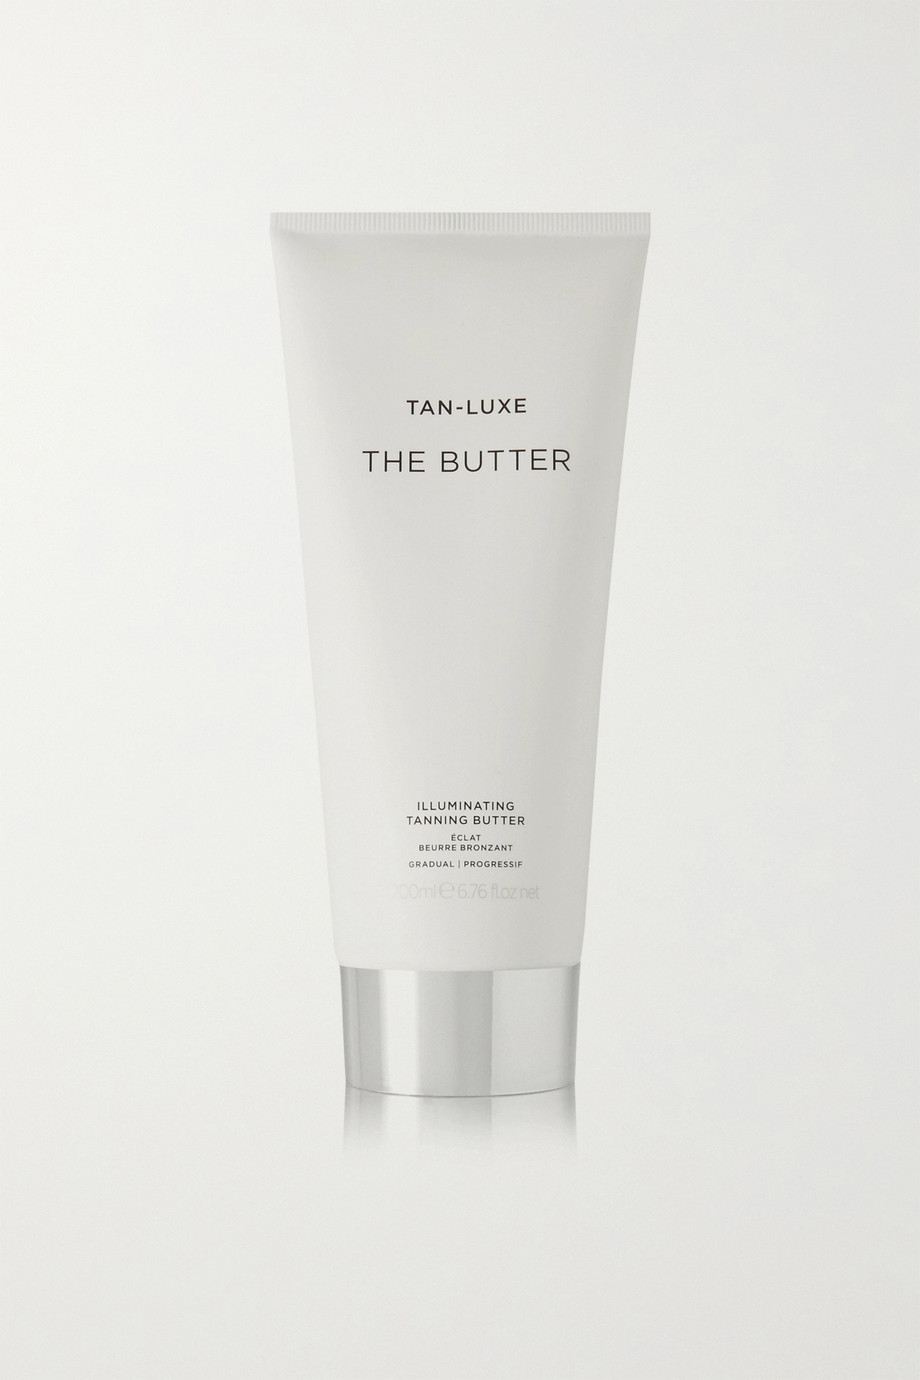 TAN-LUXE The Butter Illuminating Tanning Butter, 200ml